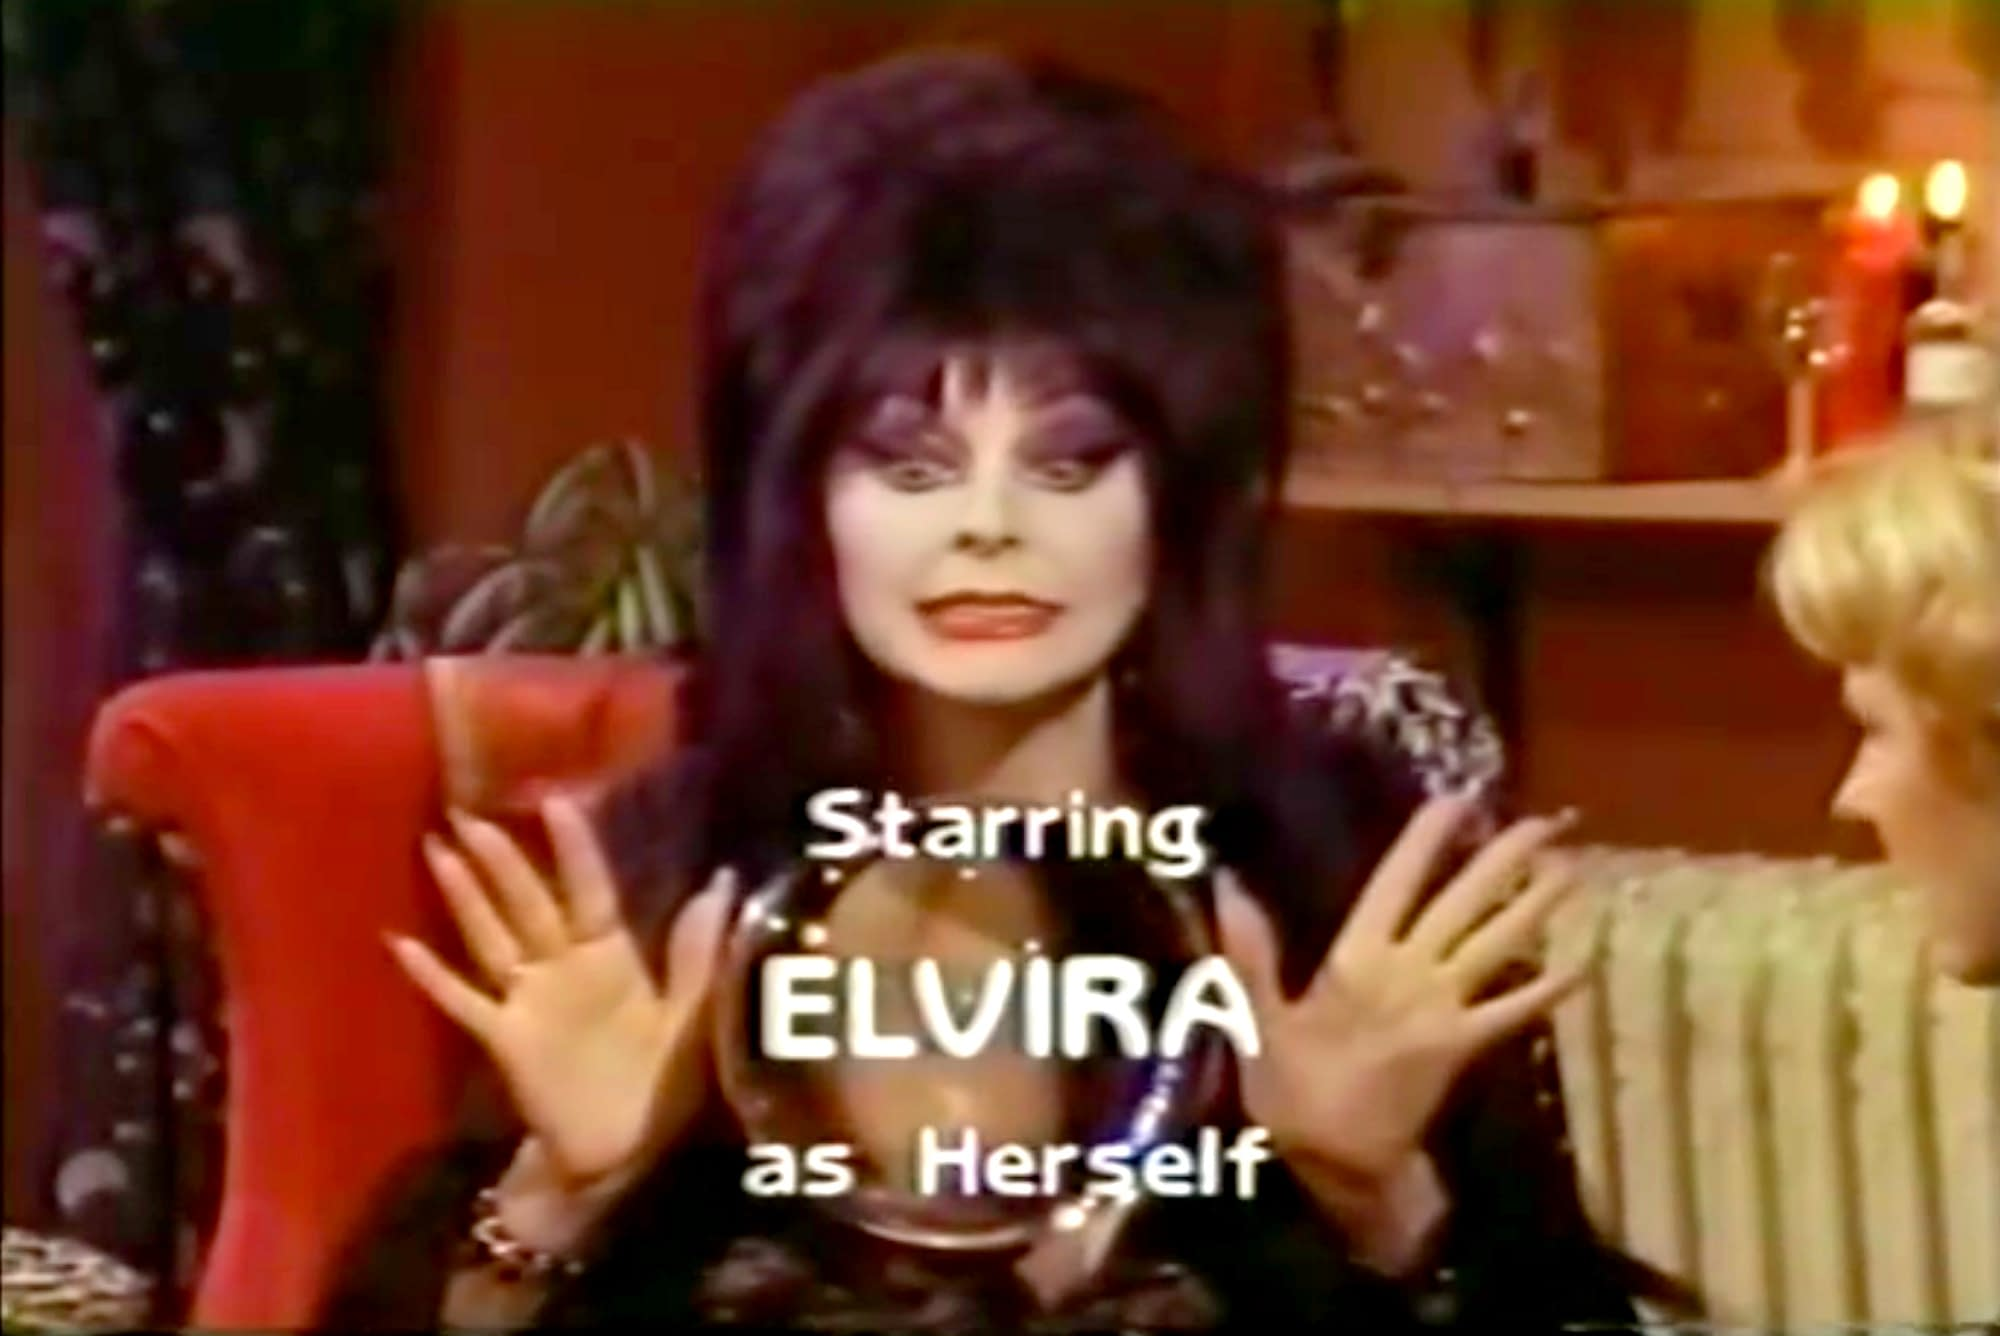 Elvira, Mistress Of The Dark, Teams Up With Dynamite For Comics And Merchandise Bonanza